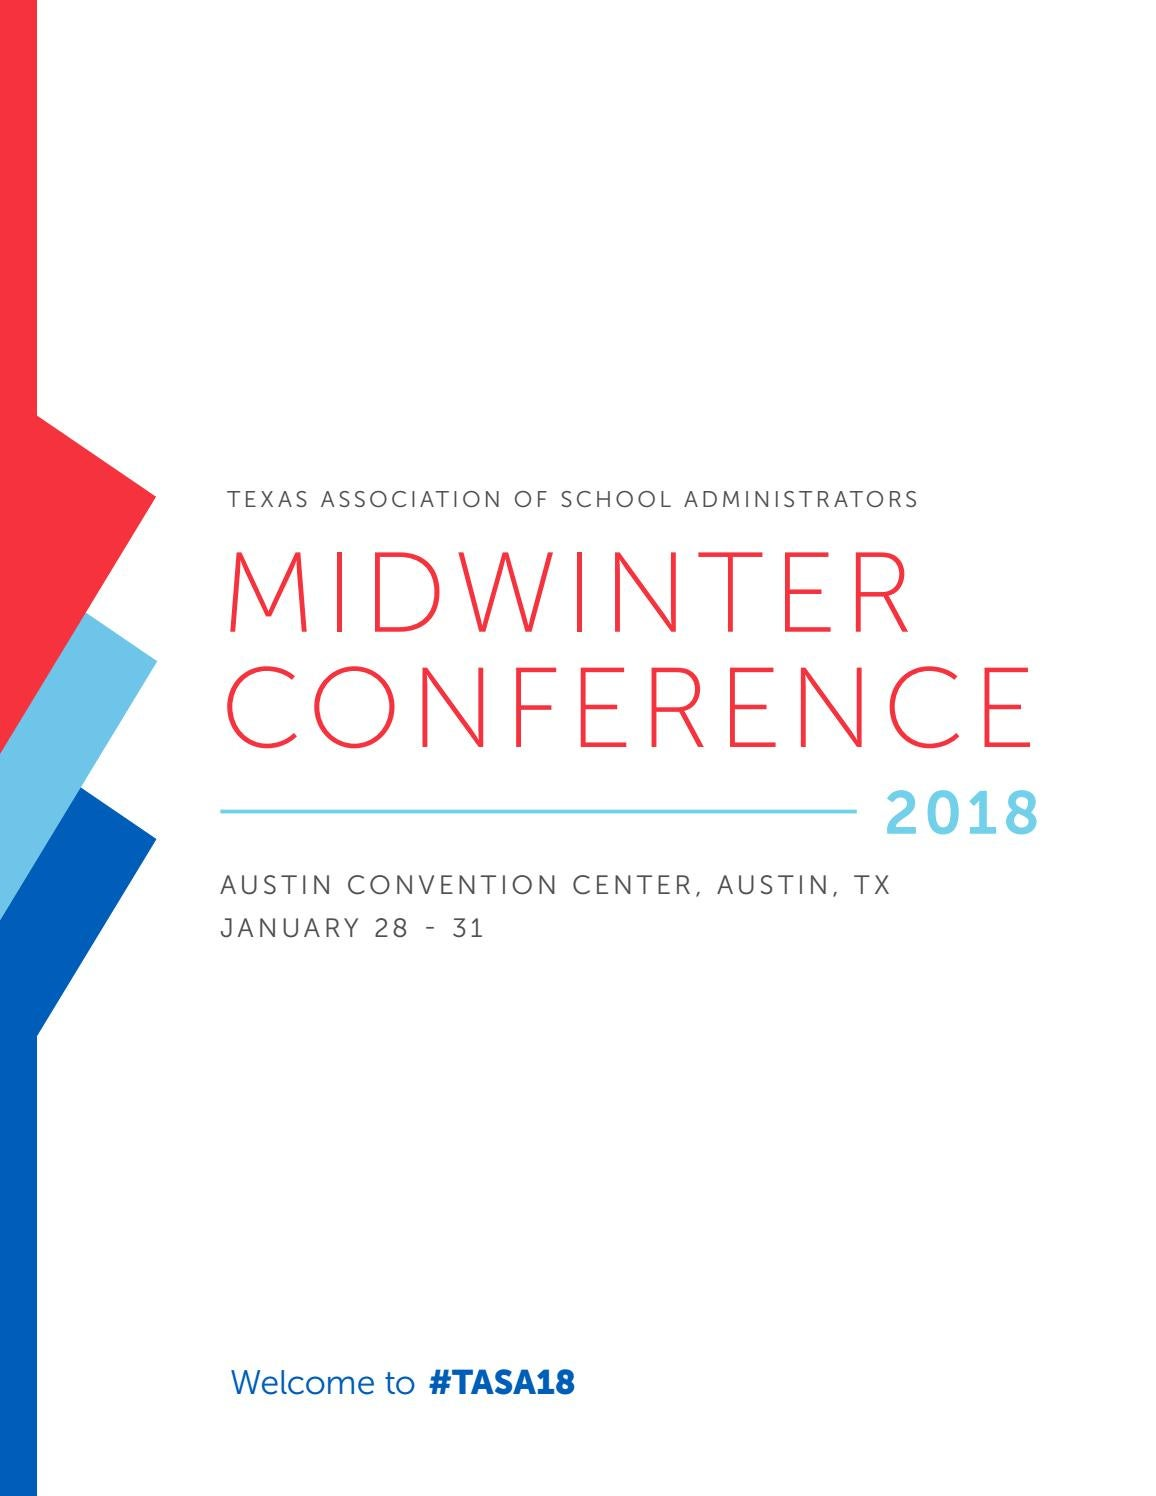 2018 Midwinter Conference Program by Texas Association of School  Administrators - issuu